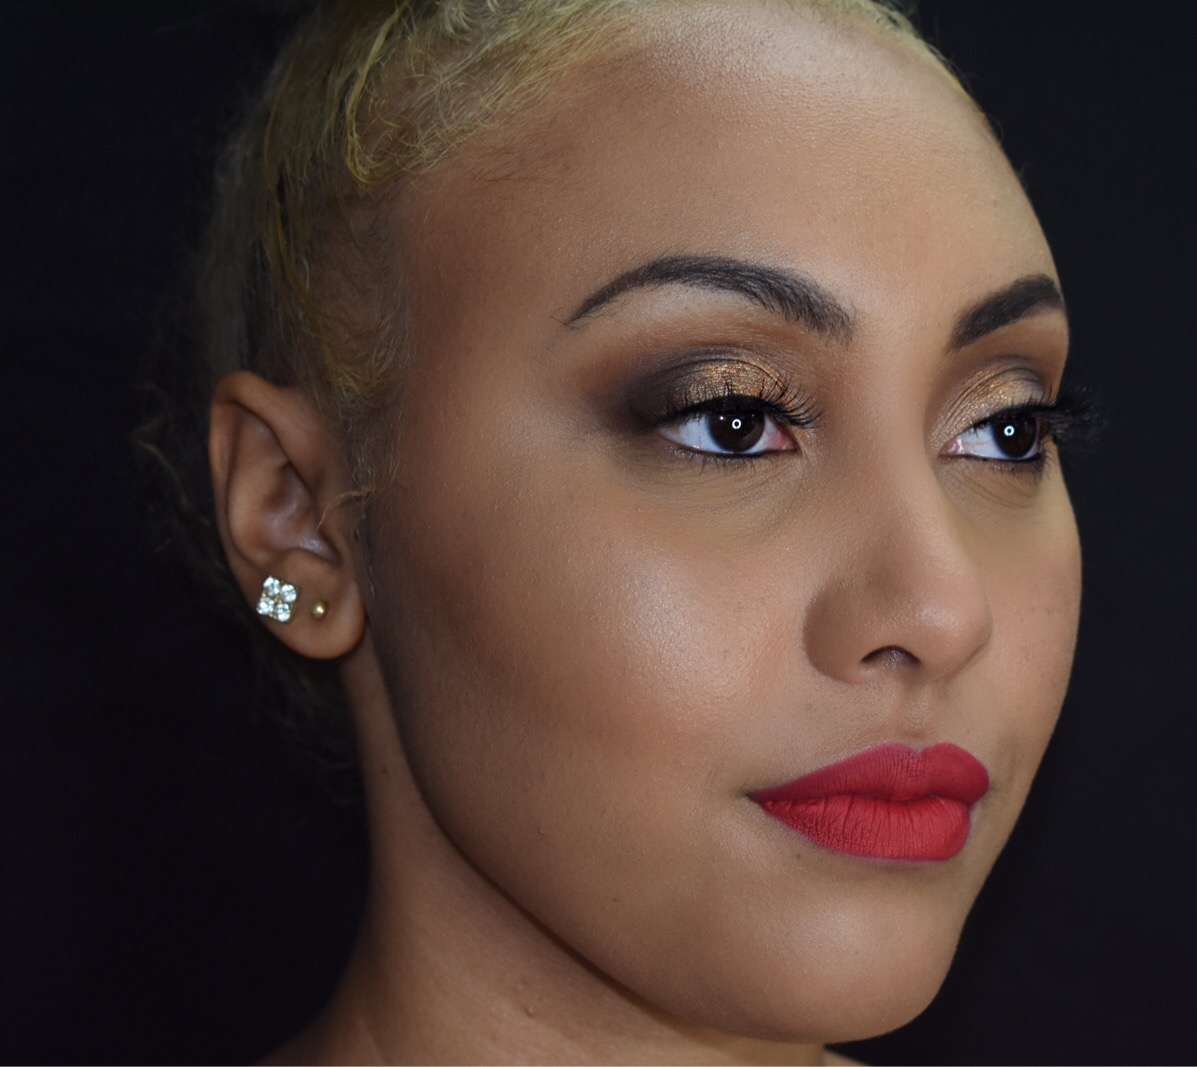 Photo Cred: George Photography   Lashes worn by the models shop www.marisaminks.bigcartel.com   Makeup done by me ladies wearing Vibrant Matte Lipsticks click on LeMae' Cosmetics